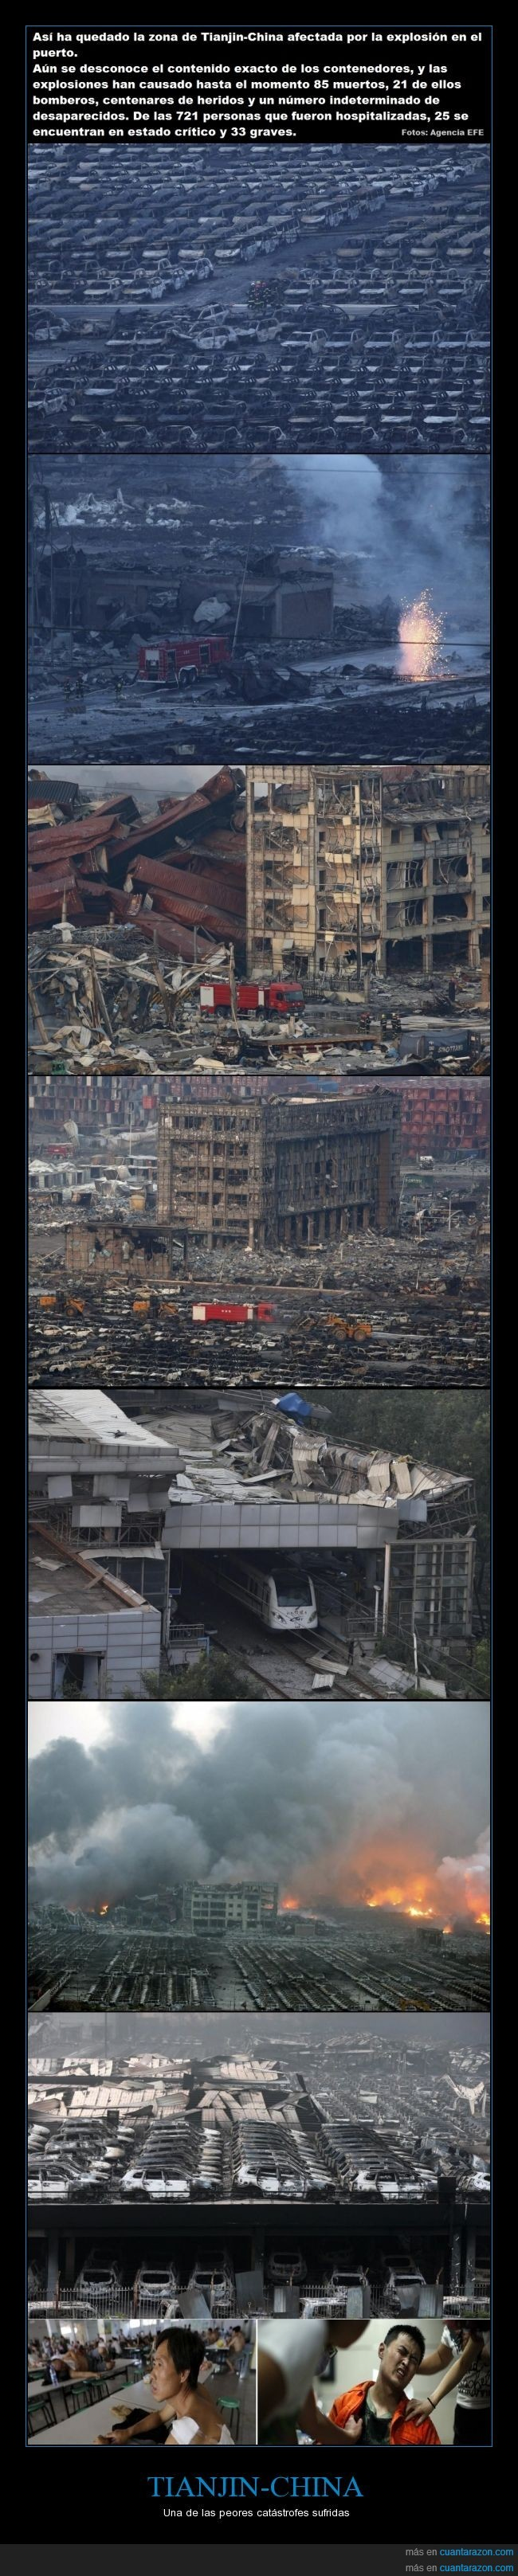 accidente,catastrofe,china,explosion,Tianjin